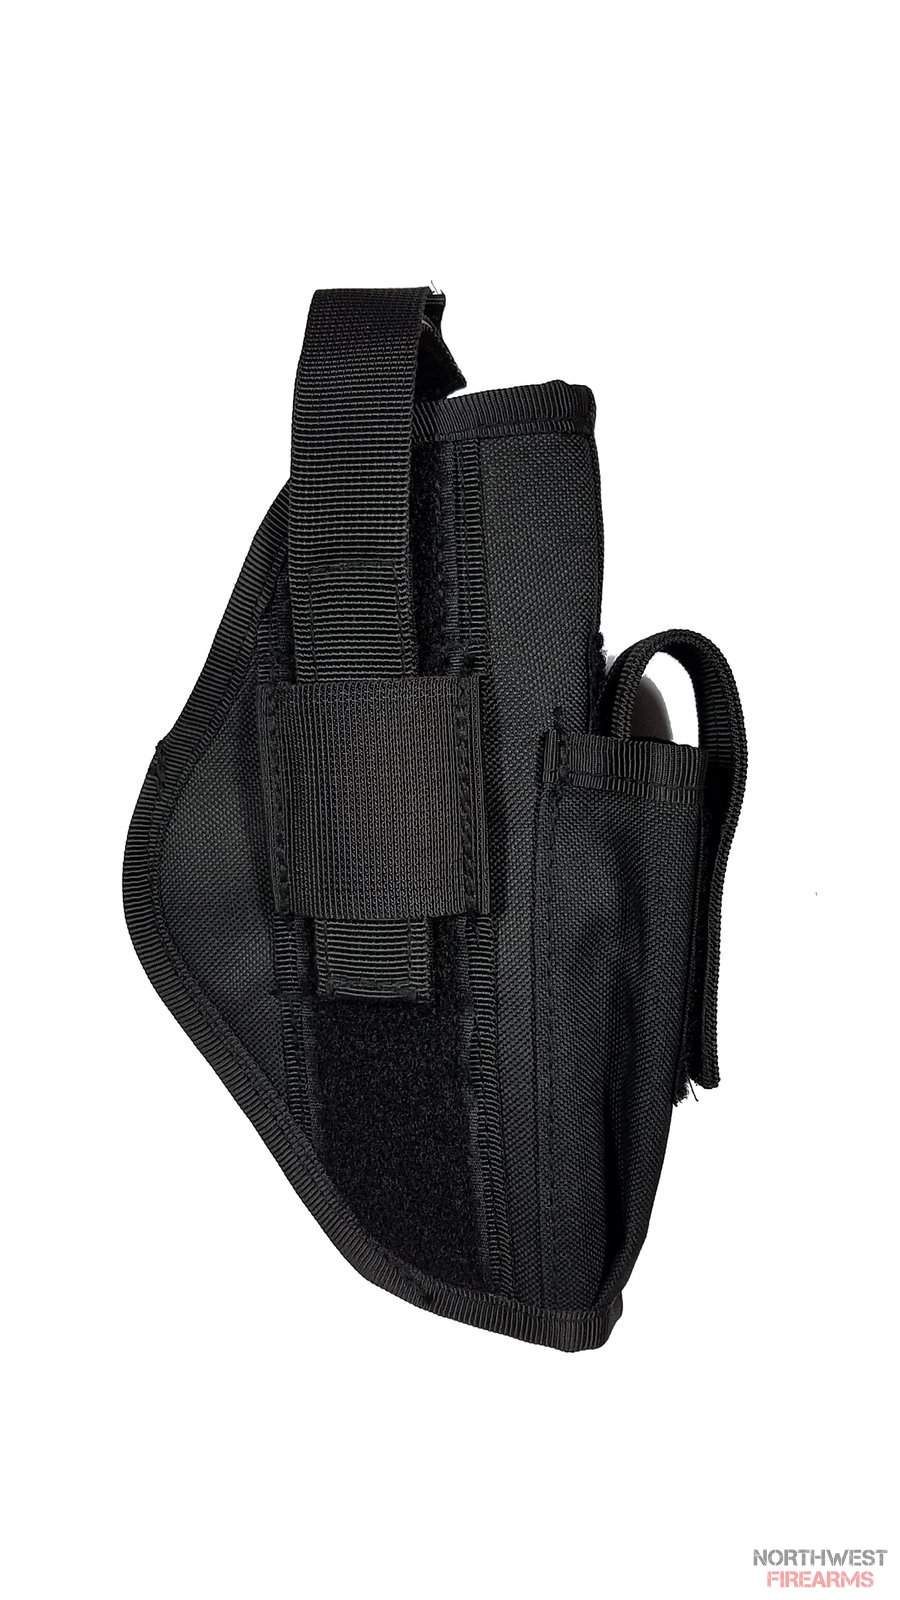 Right View - Holster